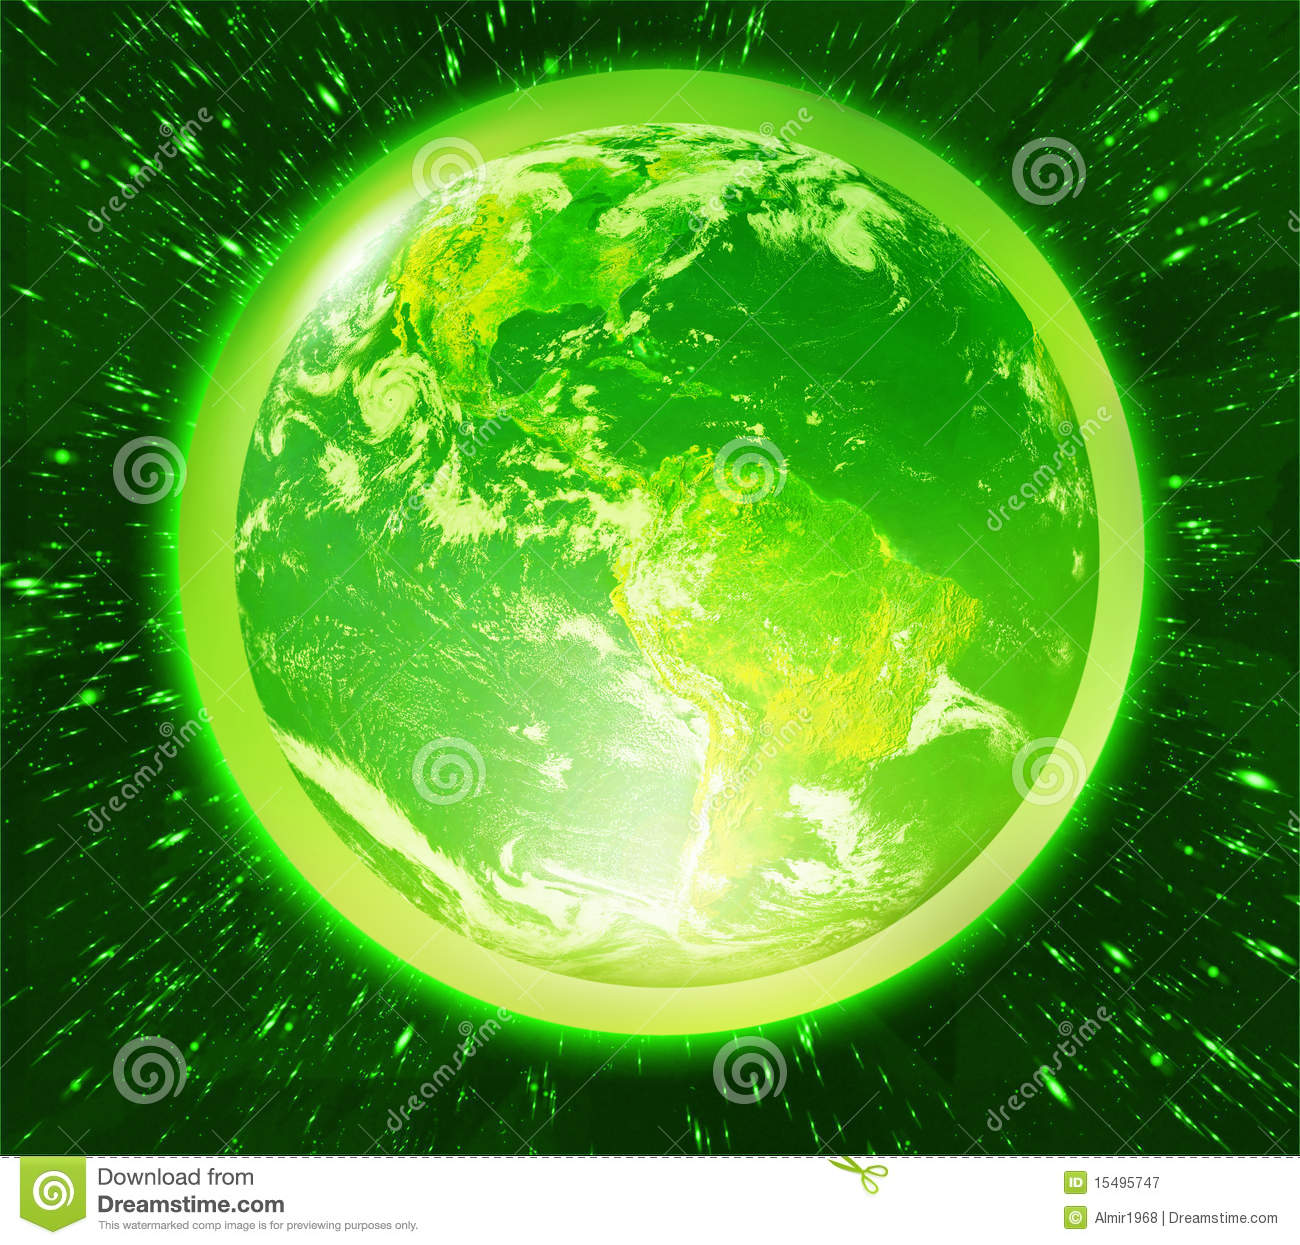 Green Earth Royalty Free Stock Photography - Image: 15495747